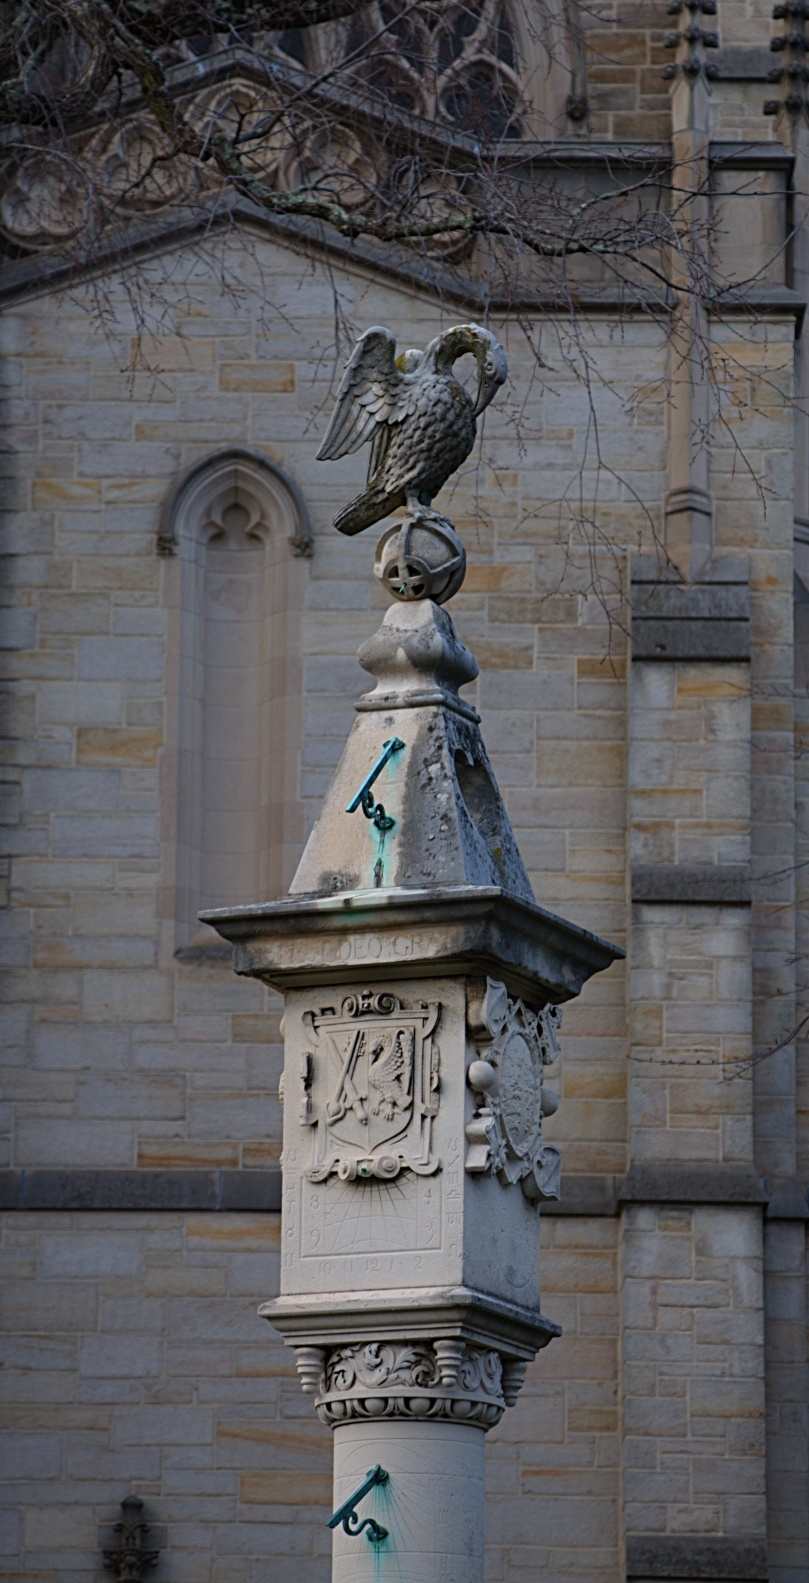 Statue on campus in Princeton 2016-01-07 16.32.19.jpg